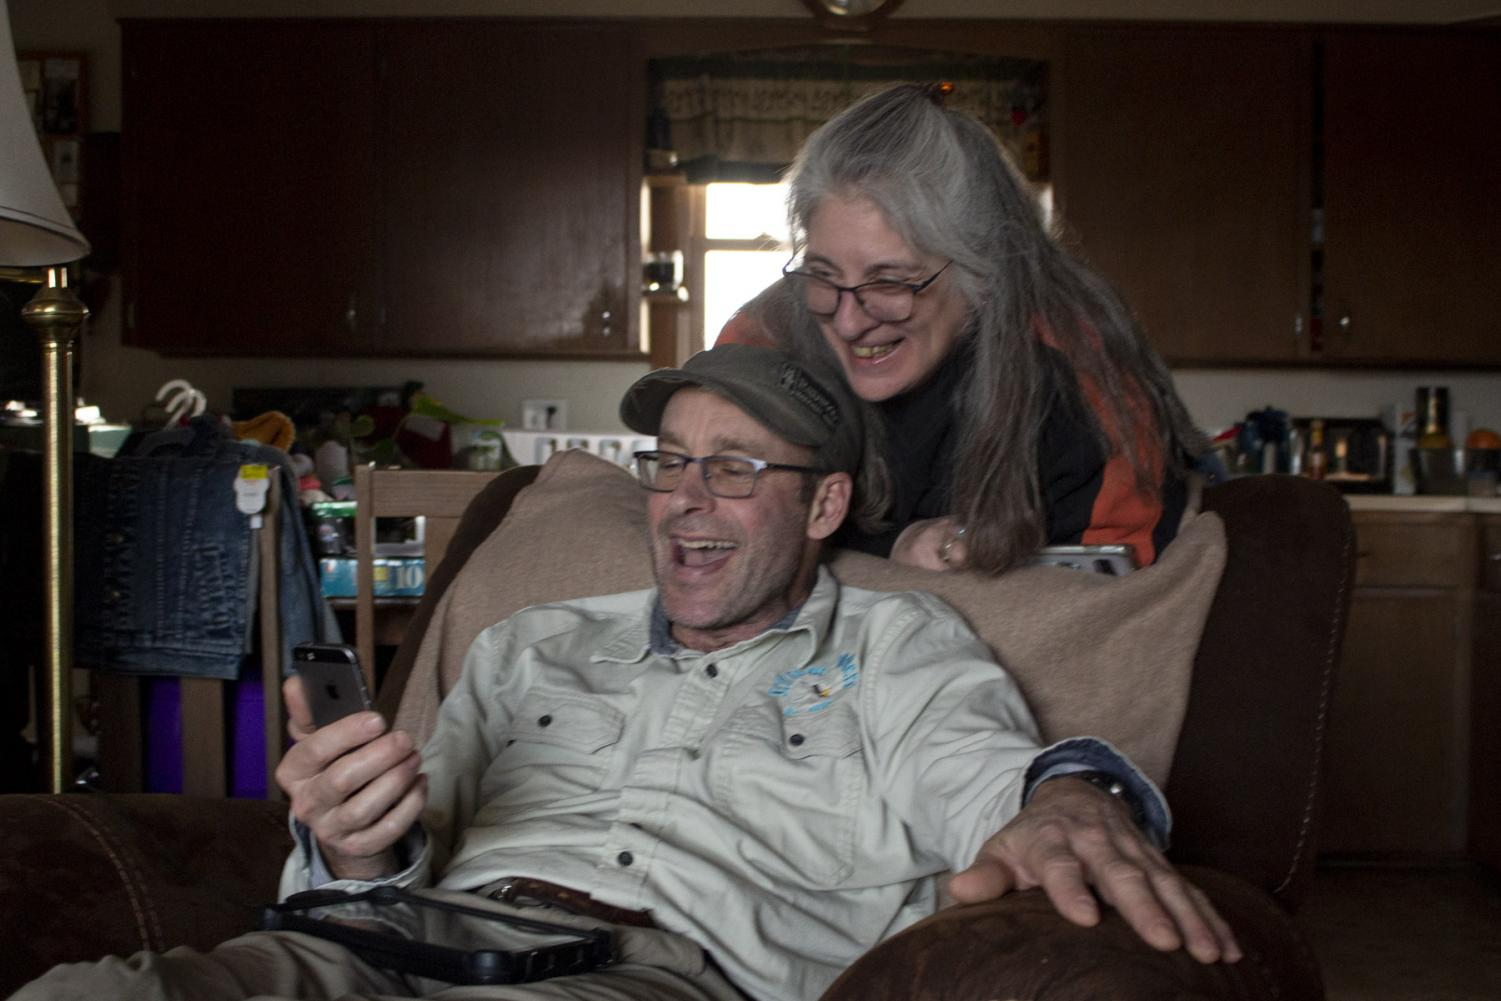 Mitch Schrage and Terese Brunner laugh with their 3 year-old grandson Oscar over facetime on April 10, at their home in New Holstein, Wis. Both Schrage and Brunner are sad that they're unable to babysit Oscar or see him in person, but they're thankful to see him through video chat.